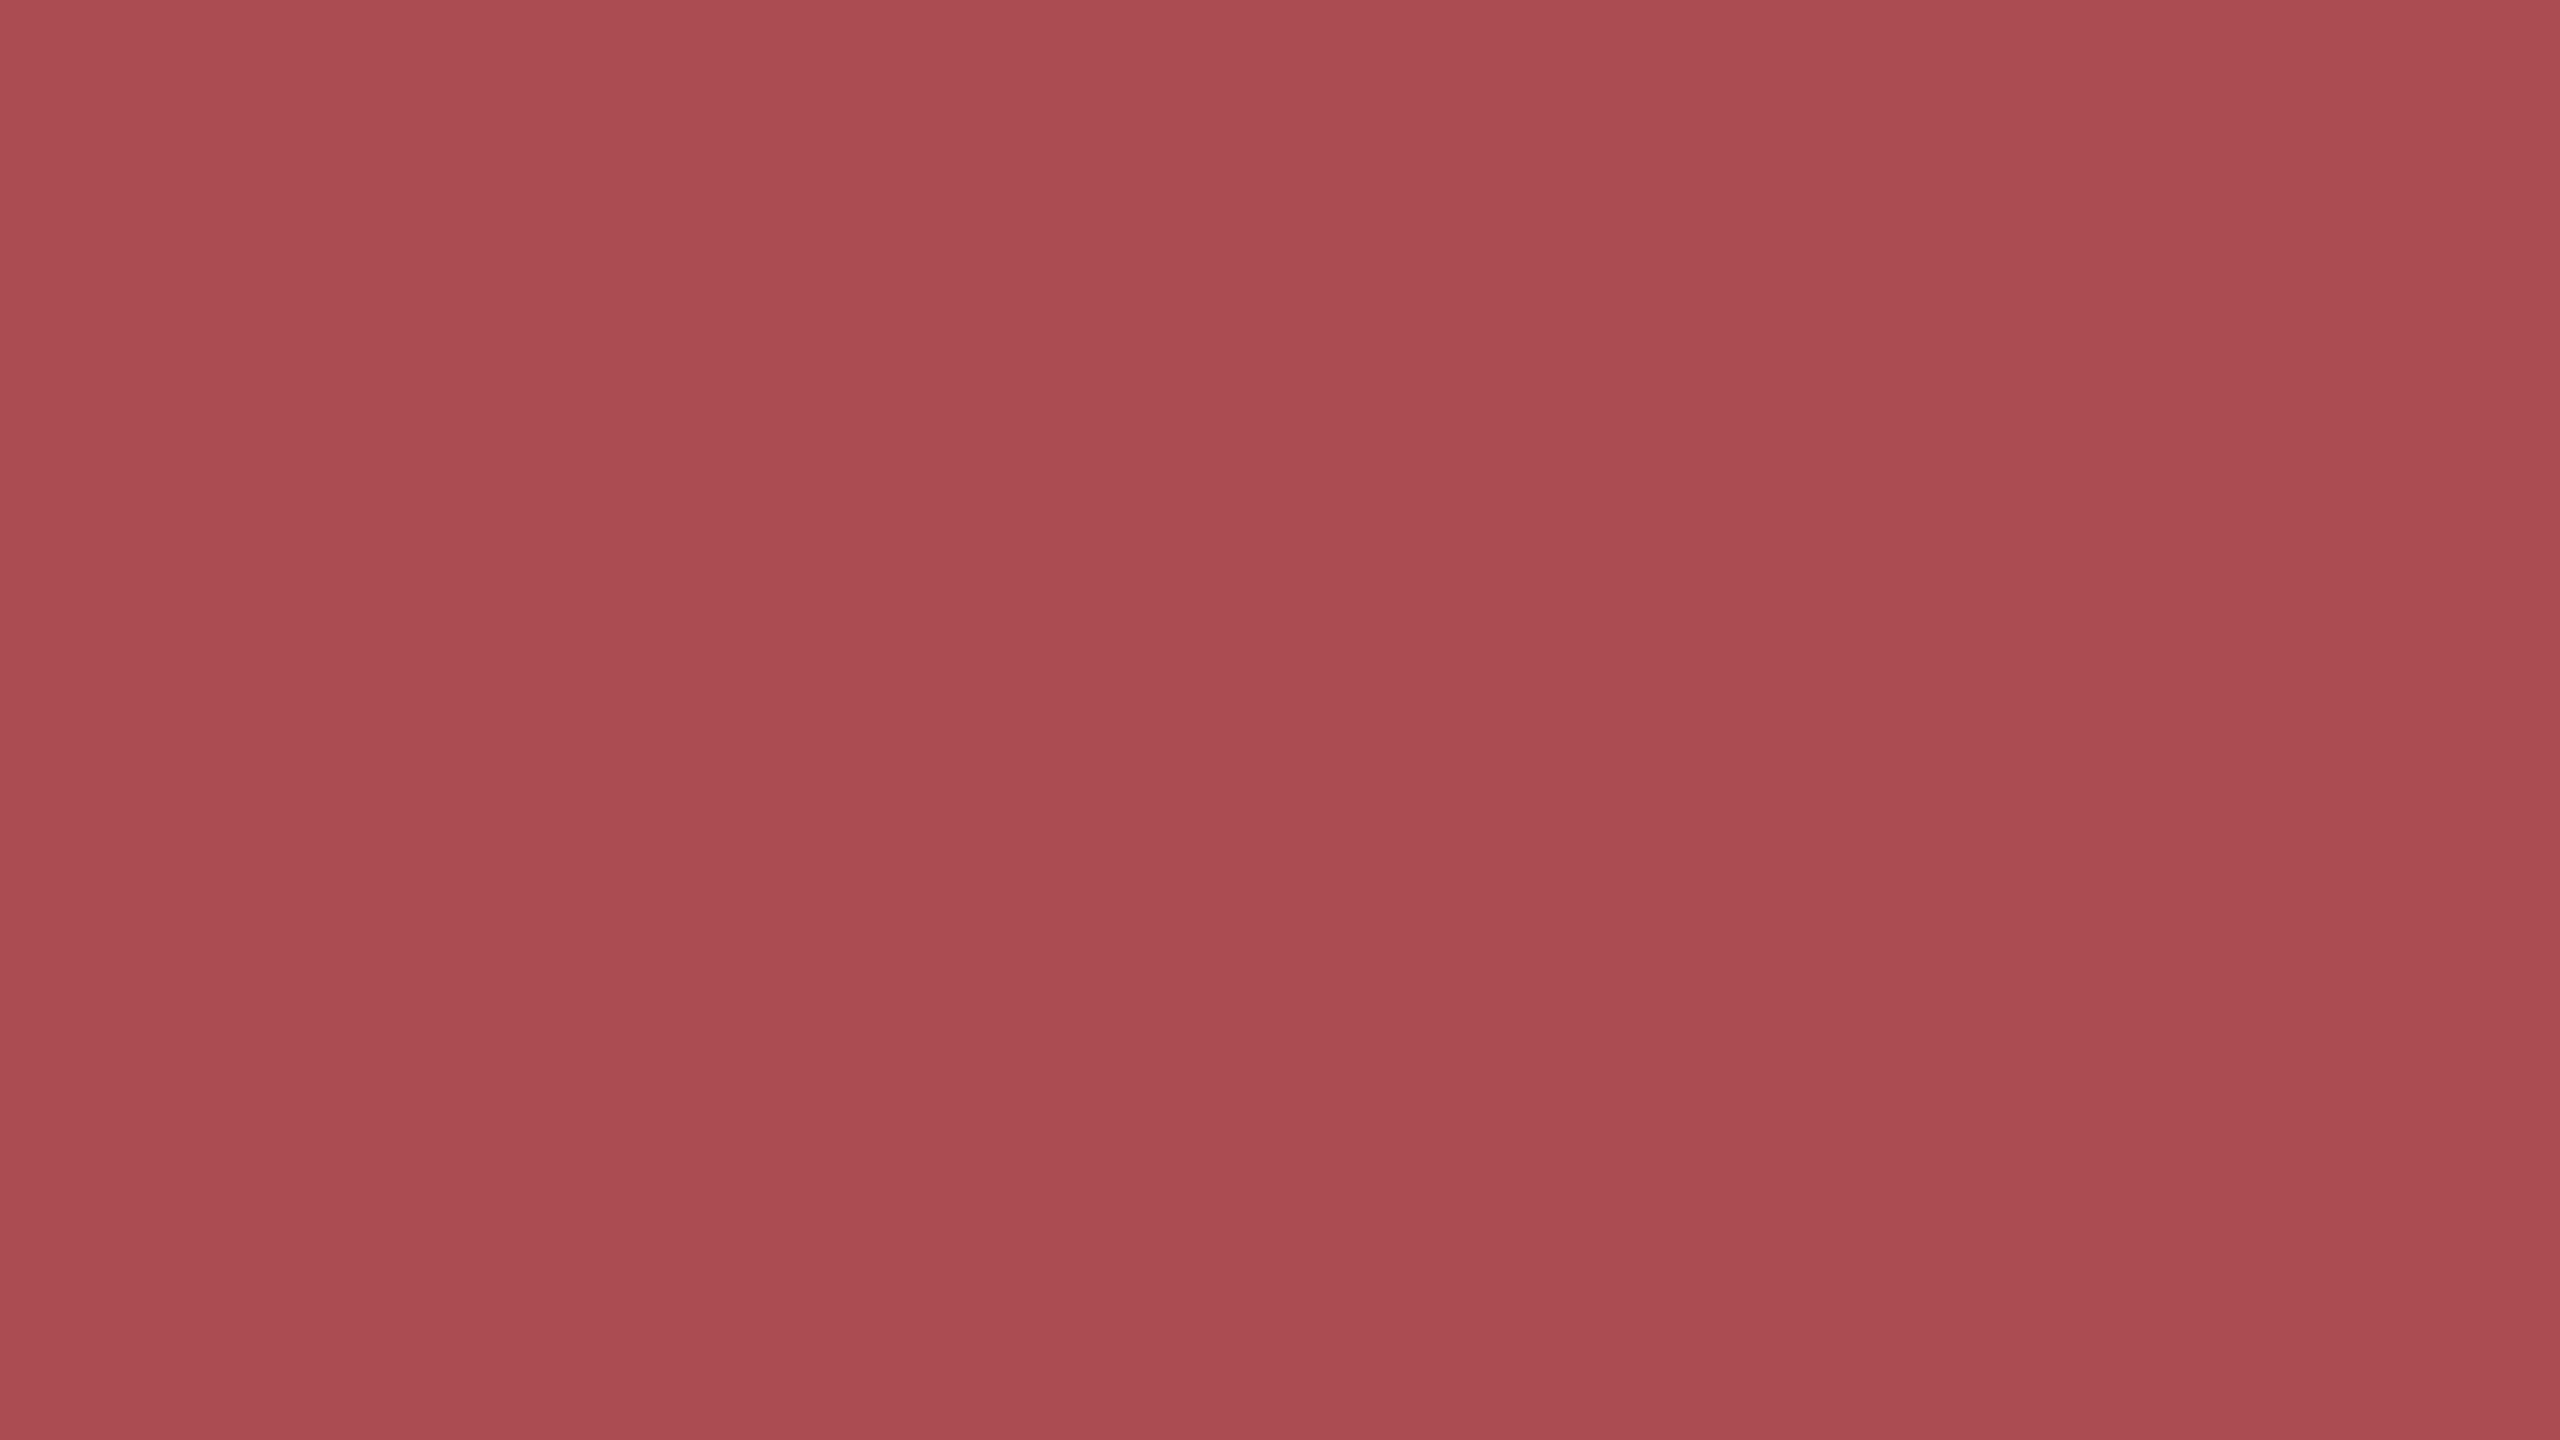 2560x1440 English Red Solid Color Background